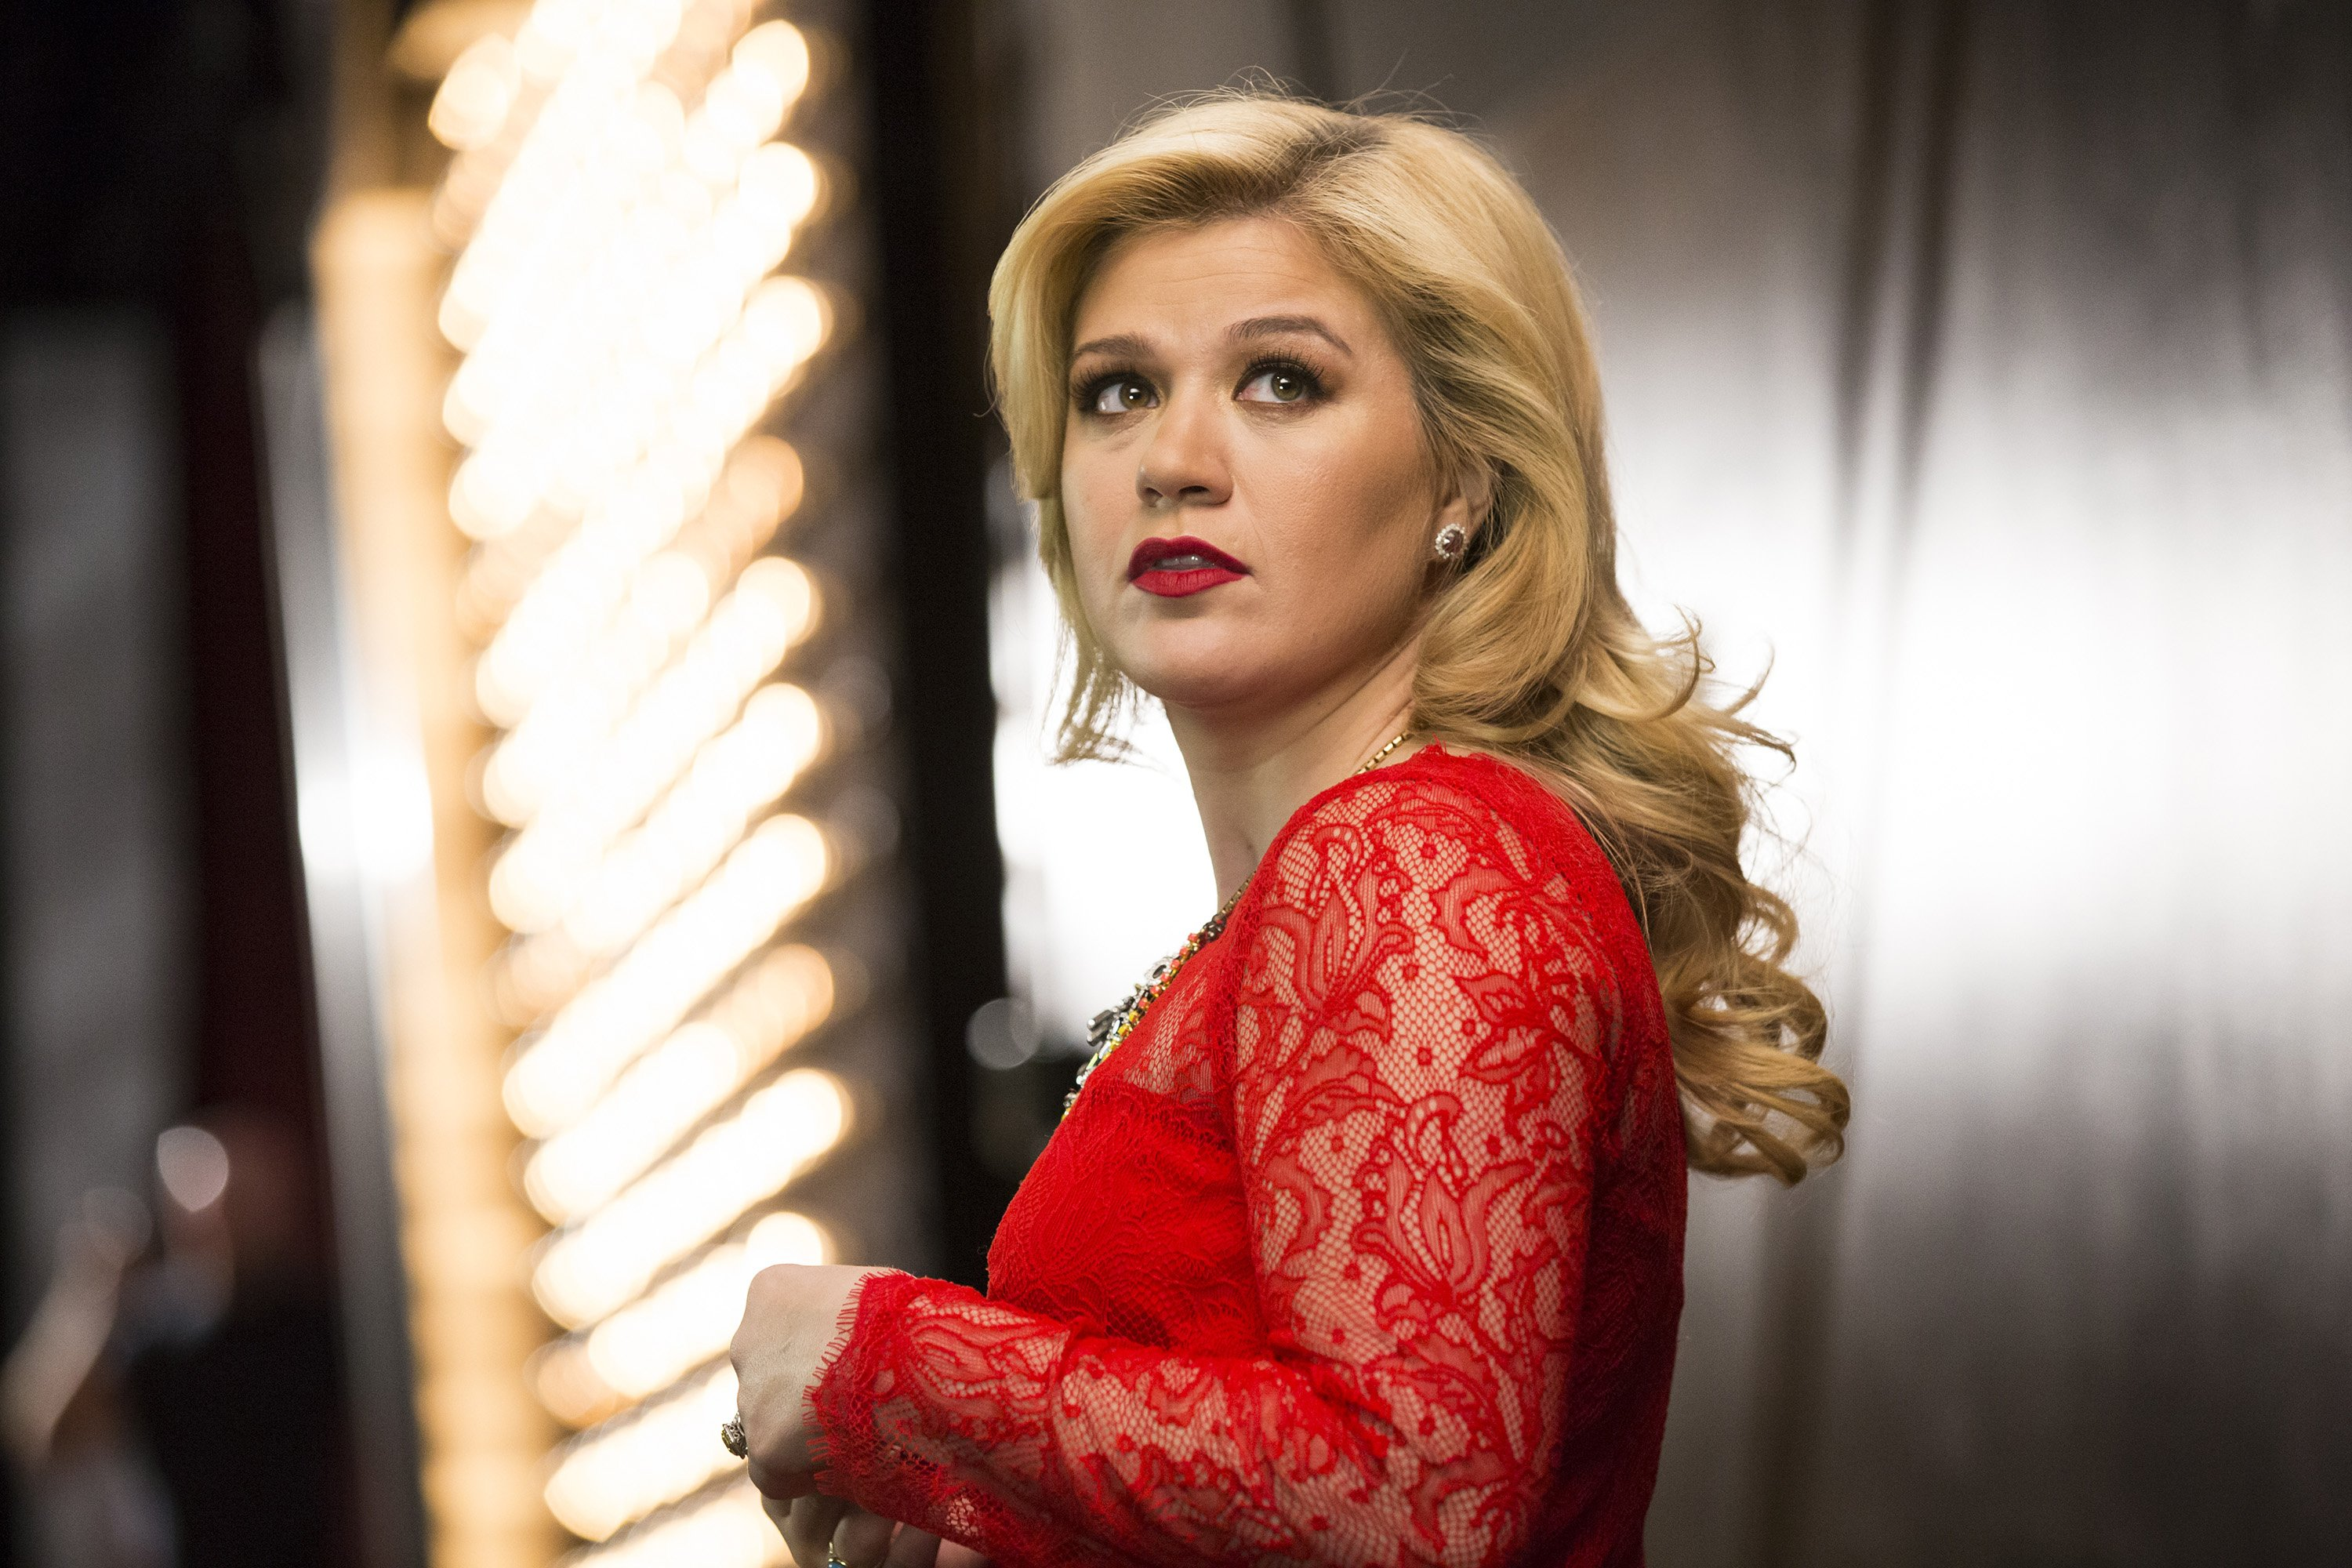 Kelly Clarkson Cautionary Christmas Music Tale - Pictured, Kelly Clarkson | Photo: Getty Images